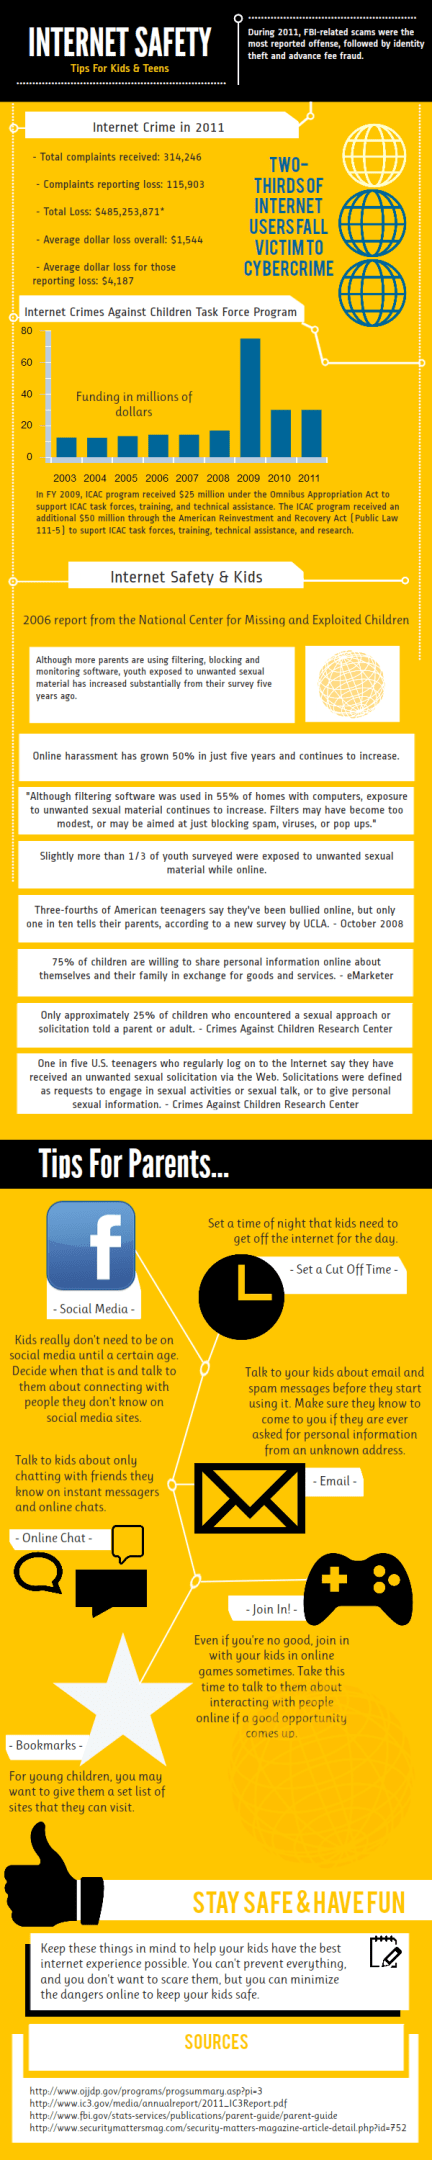 internet safety tips for kids infographic